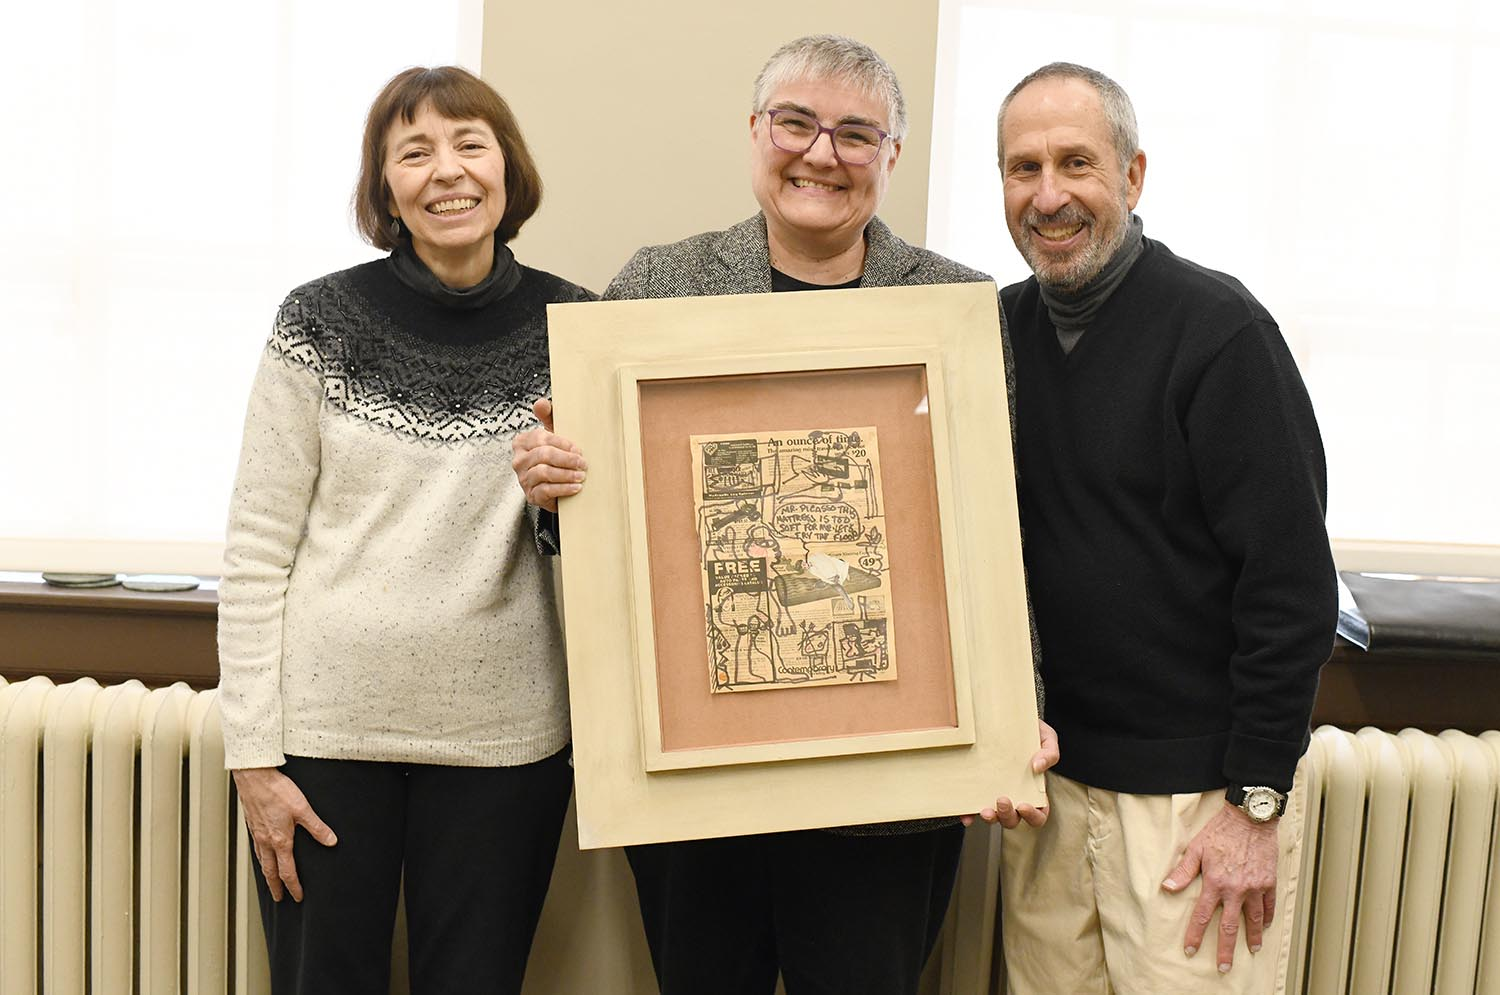 Rare Bearden collage donated to Special Collections & Archives in honor of director